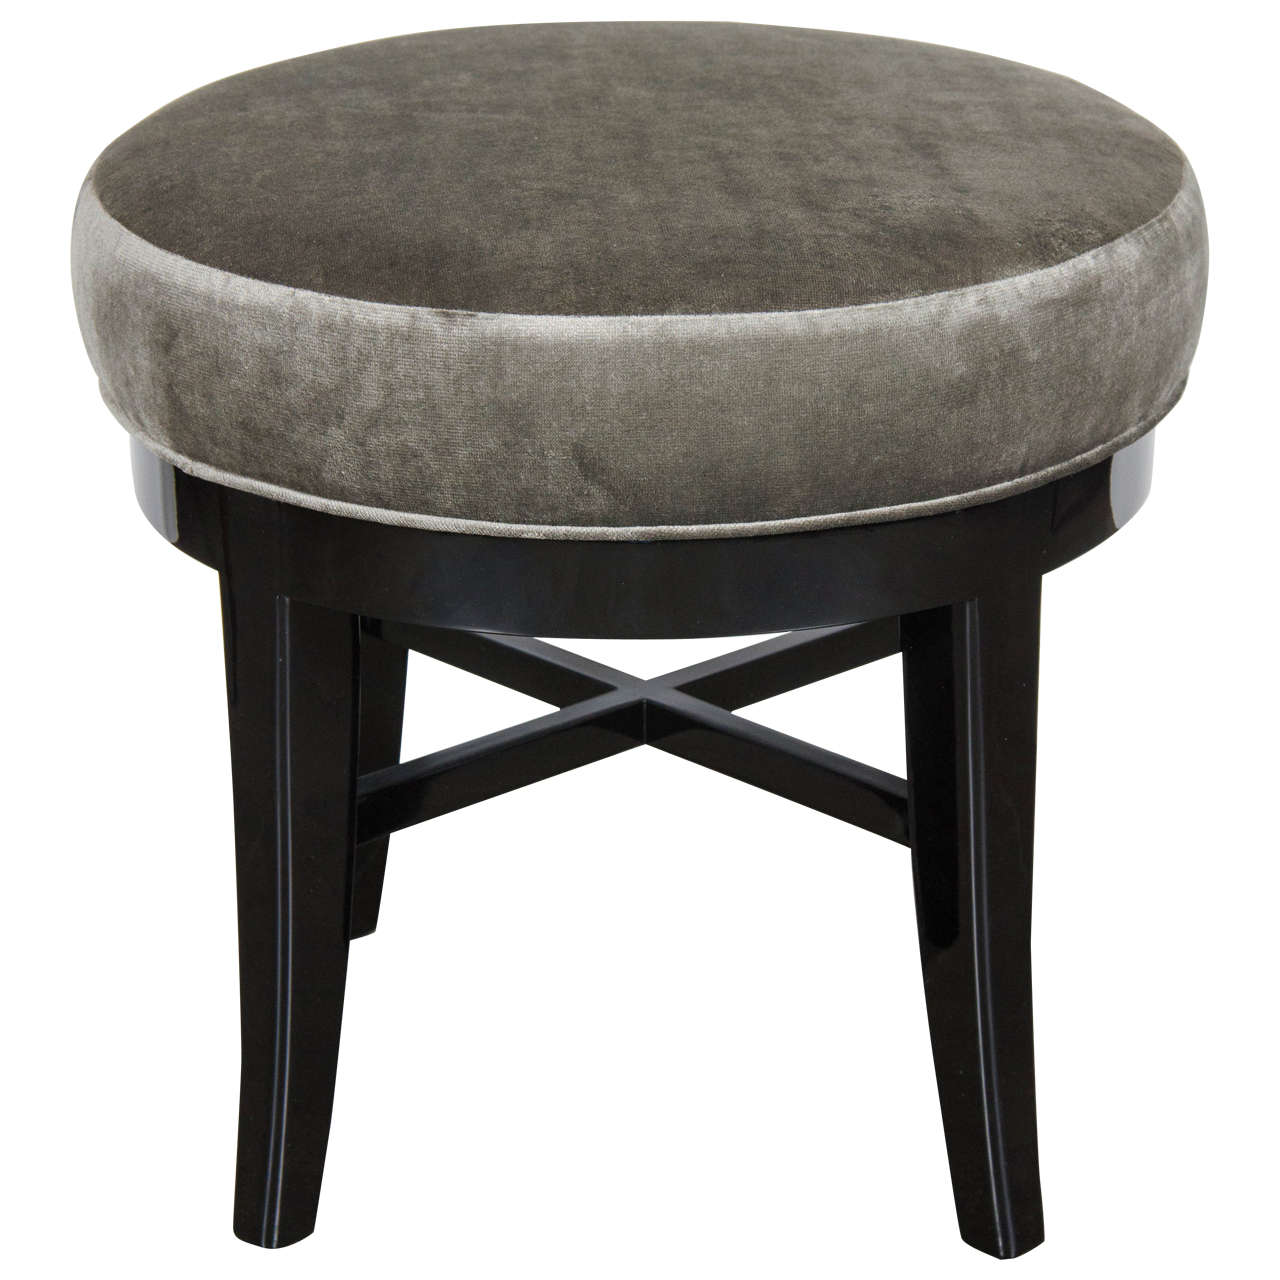 Phenomenal Mid Century Modernist Round Swivel Vanity Stool With X Form Dailytribune Chair Design For Home Dailytribuneorg